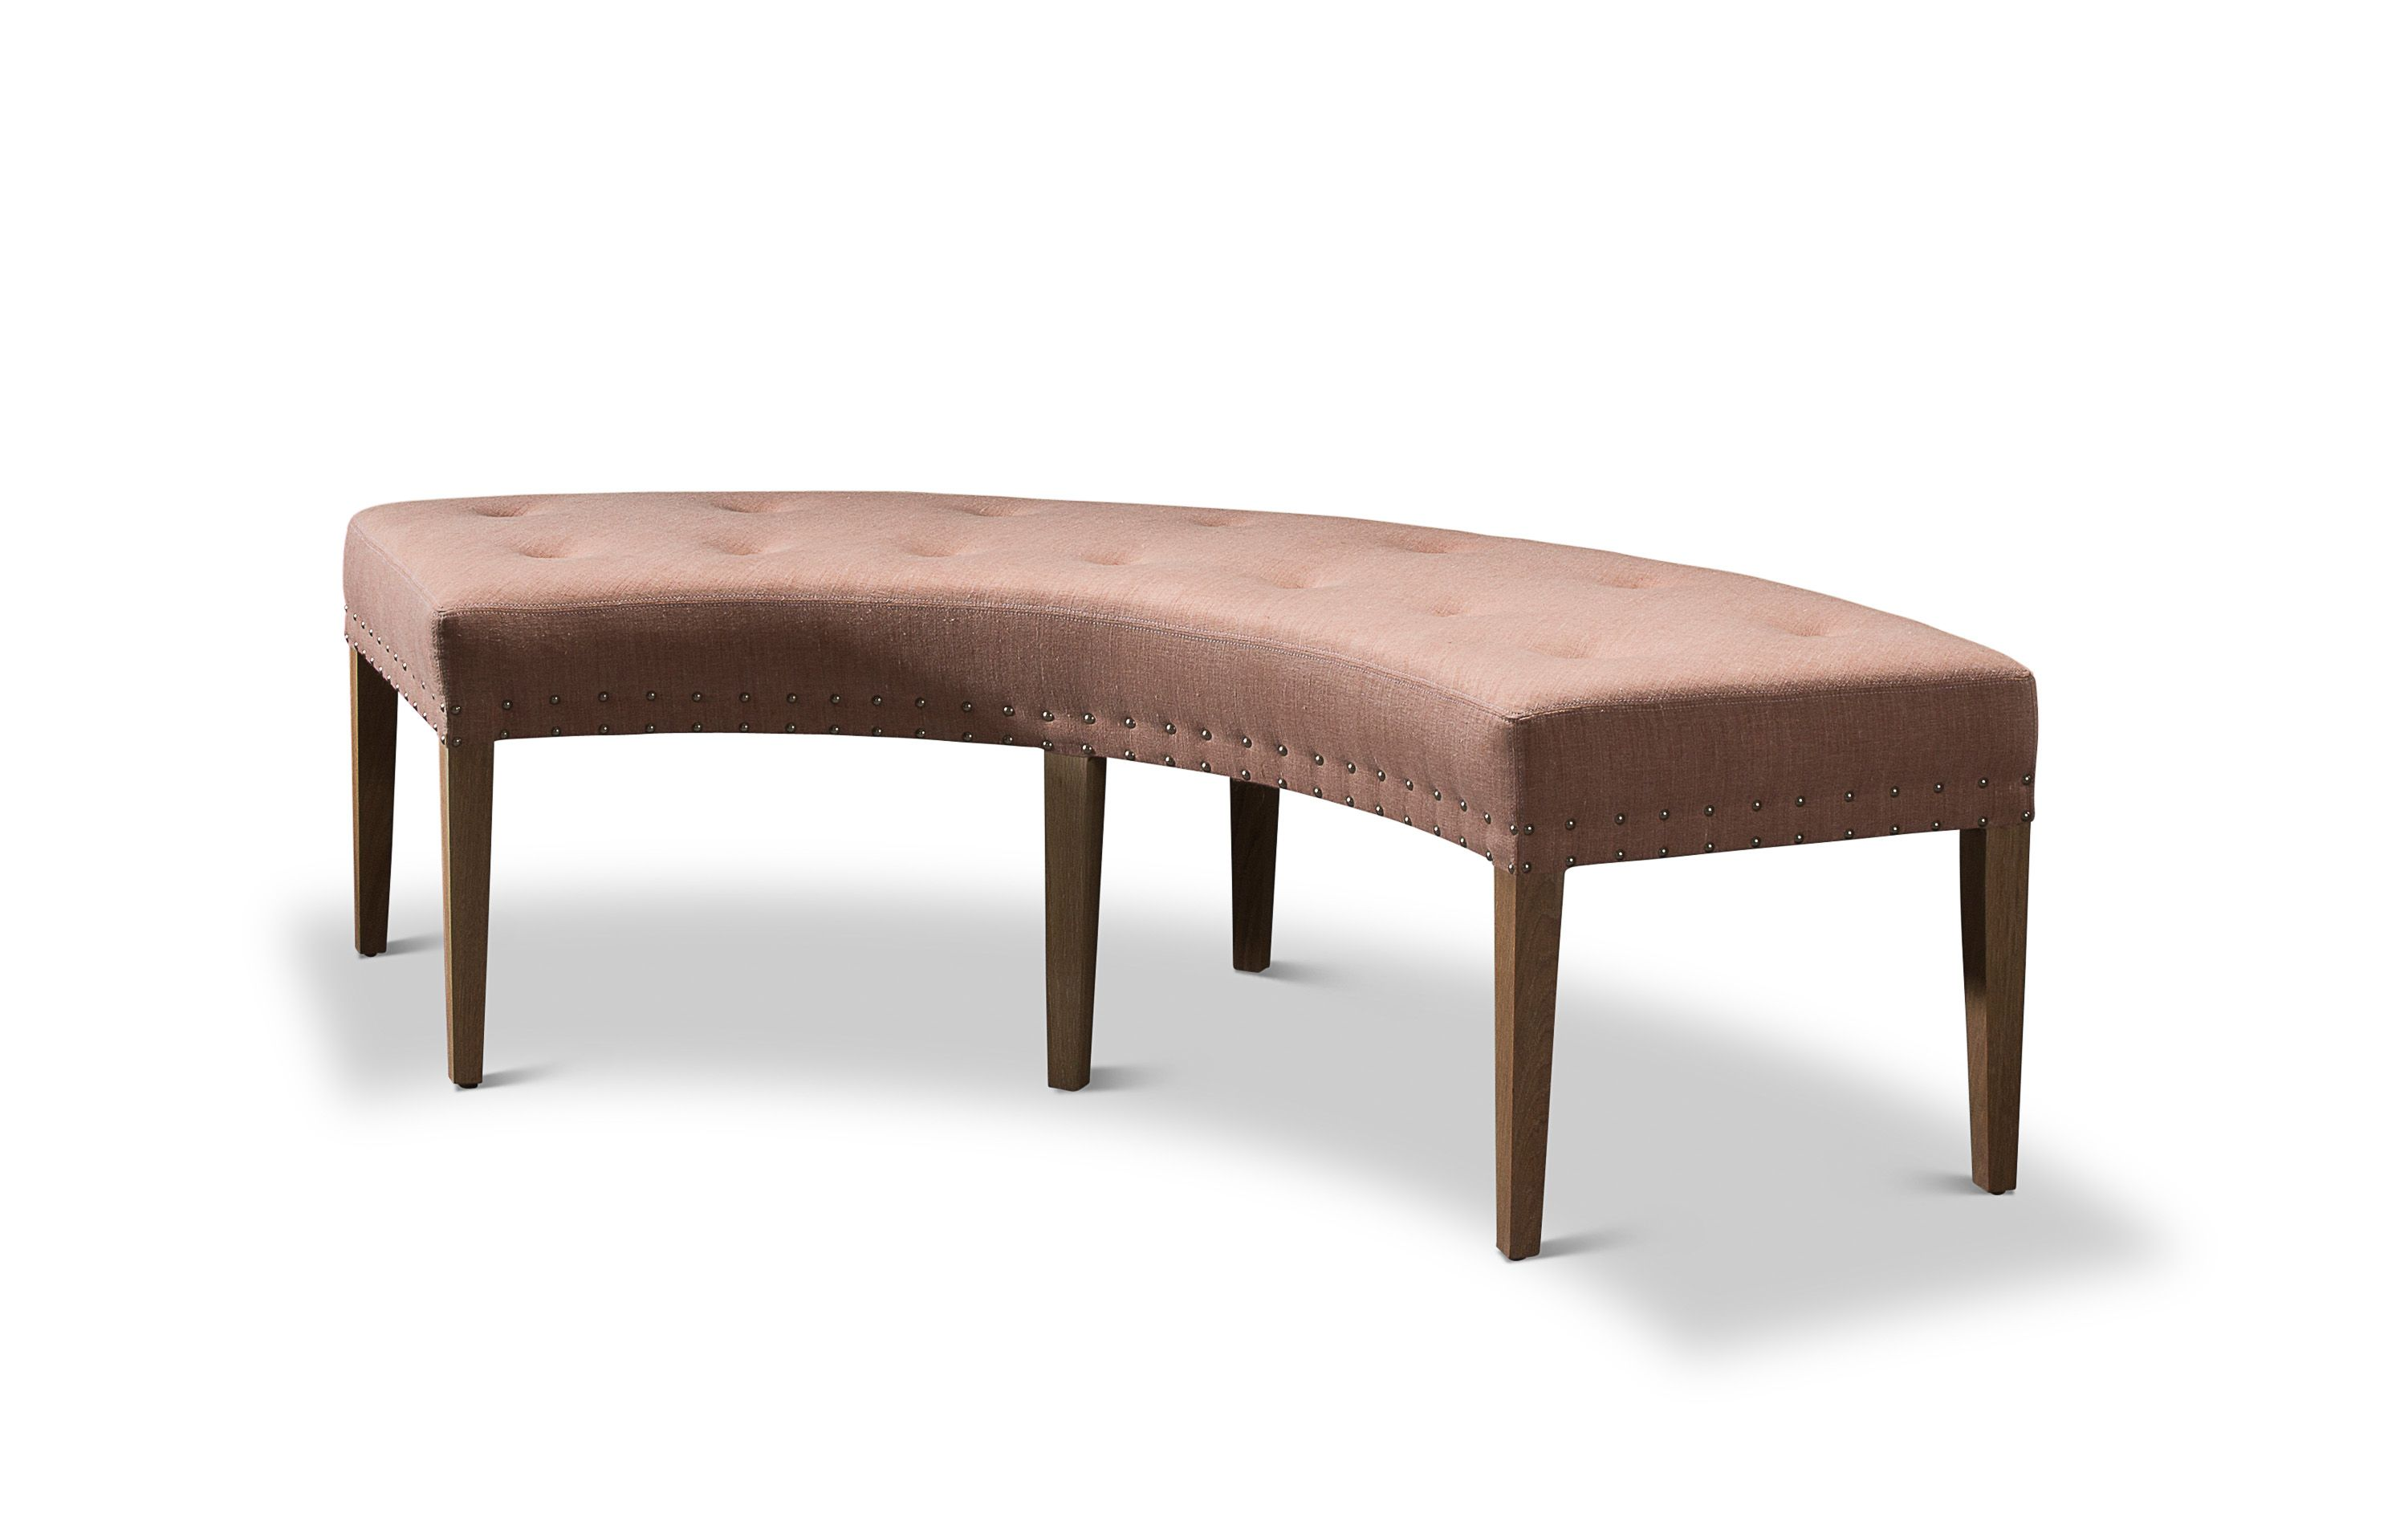 Maya Curved Dining Bench By Verellen Sold At South Of